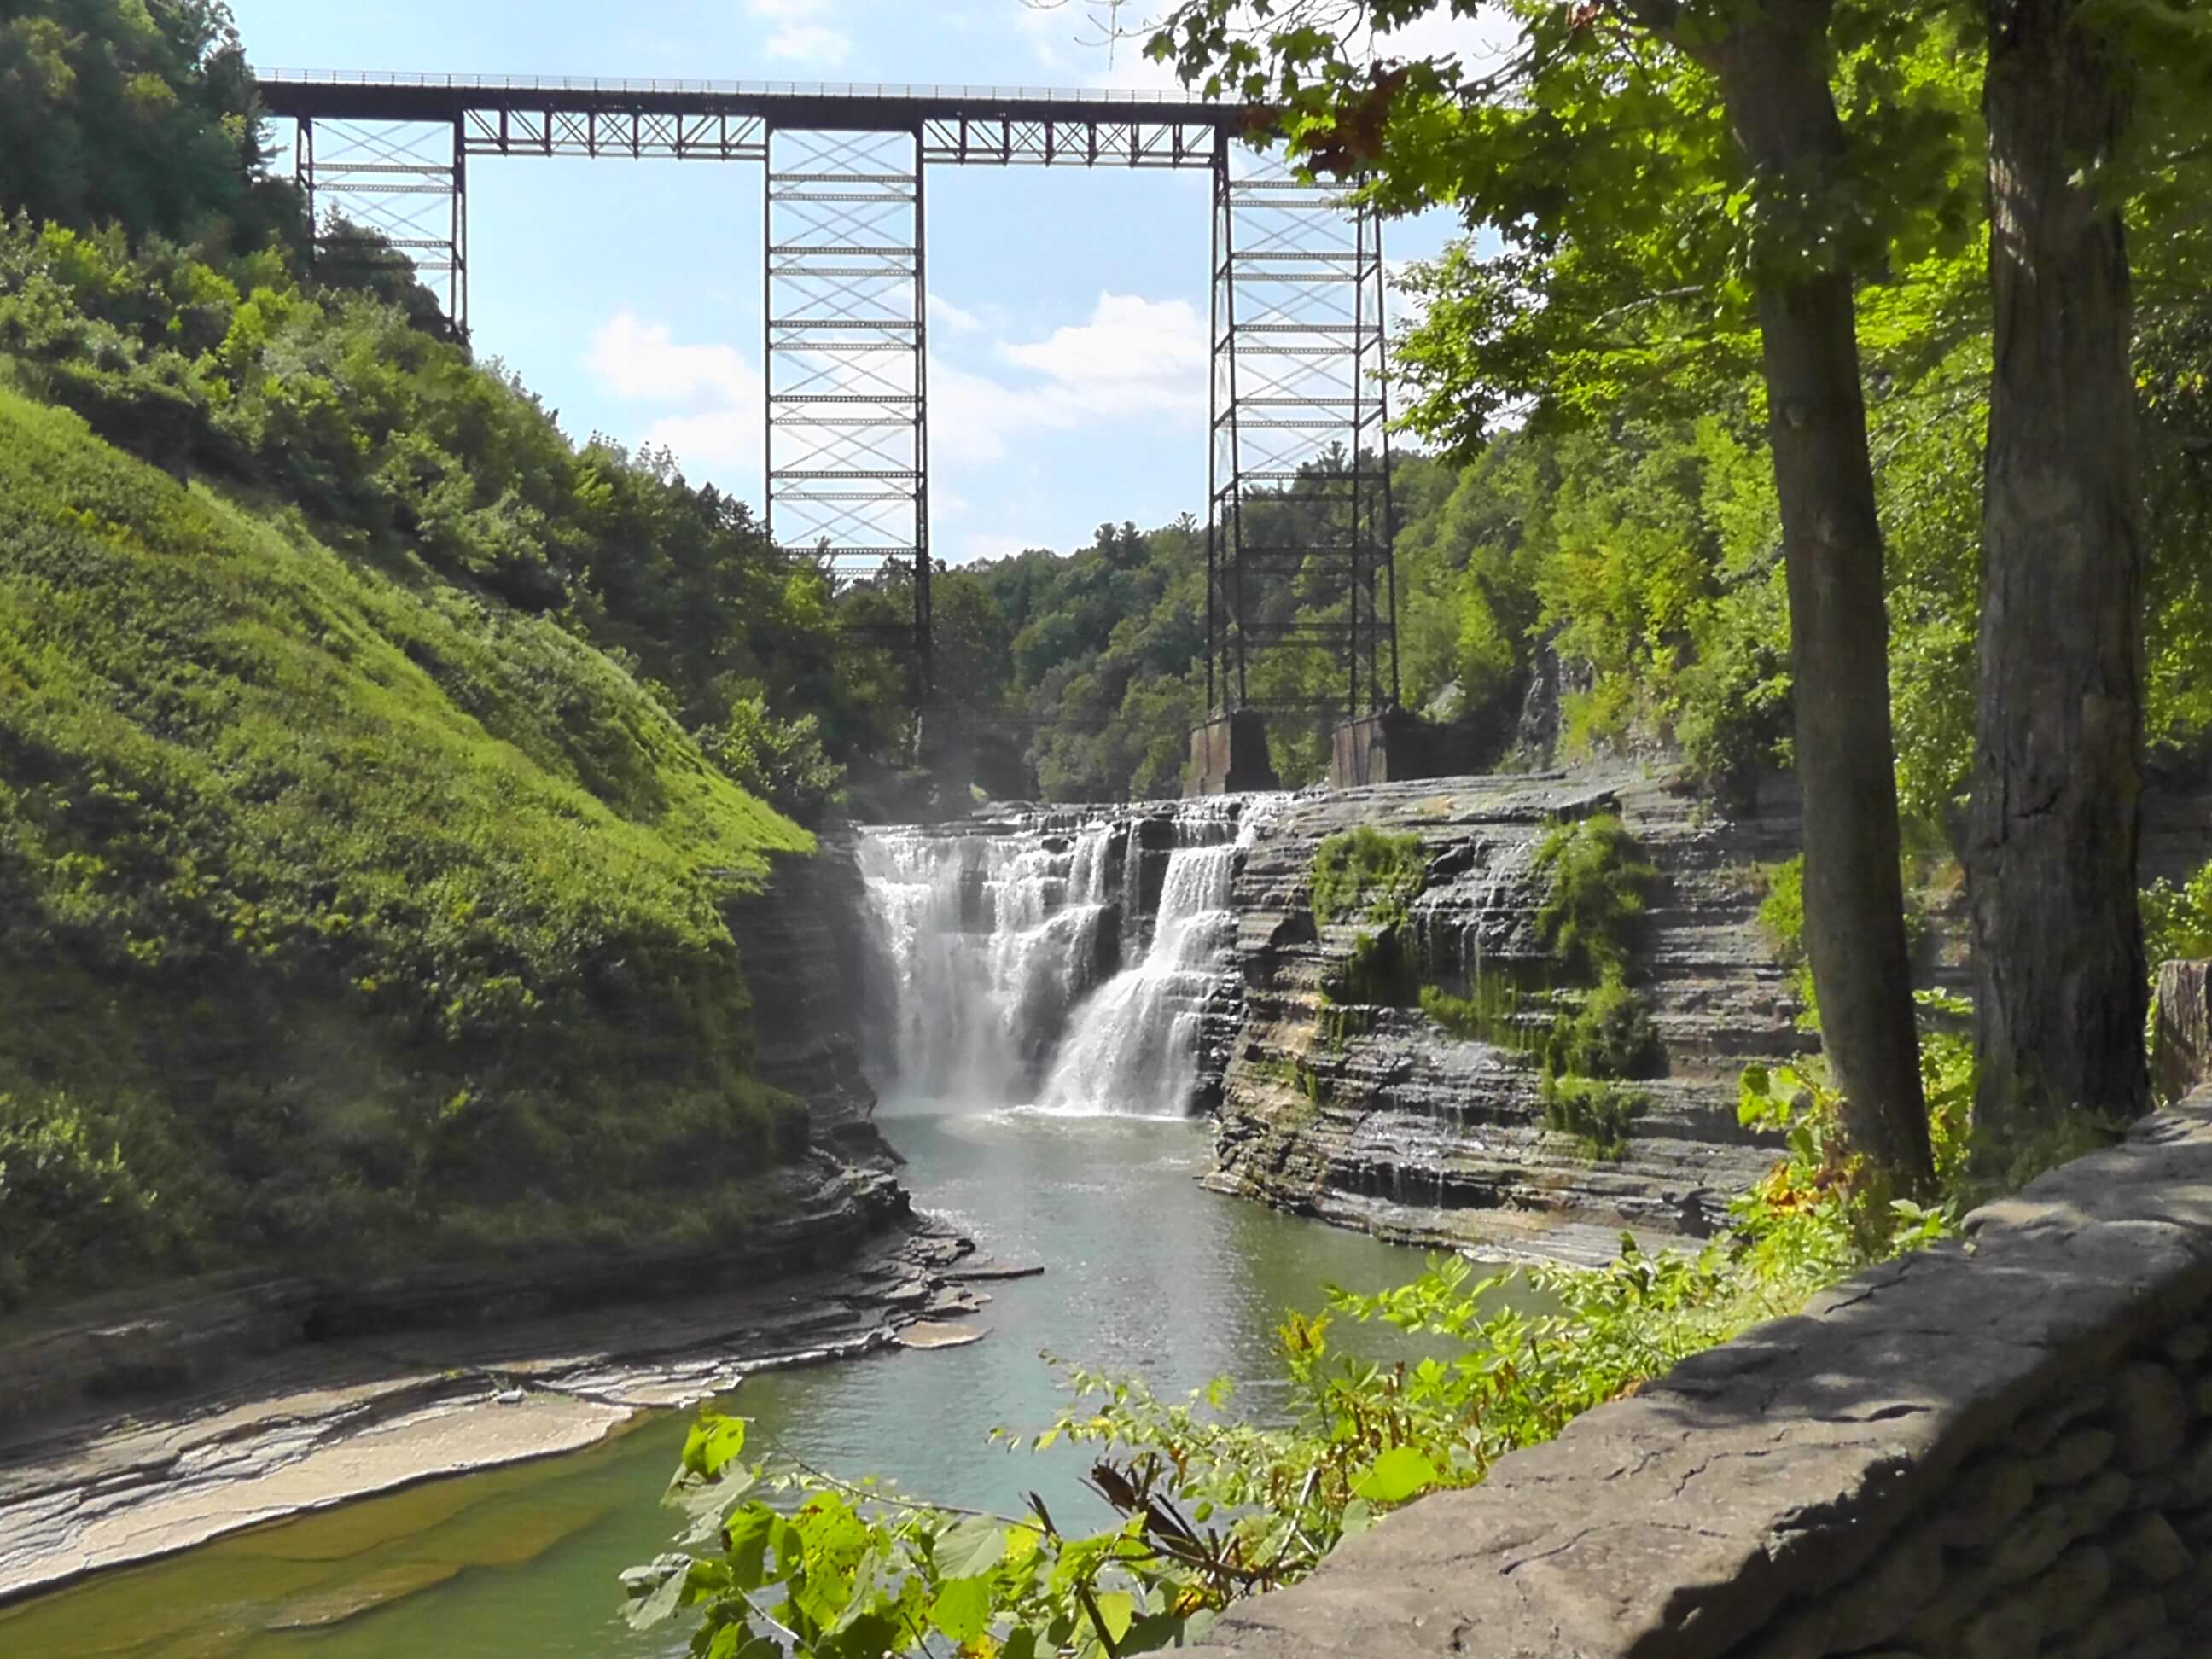 Upper Falls, Letchworth State Park, New York